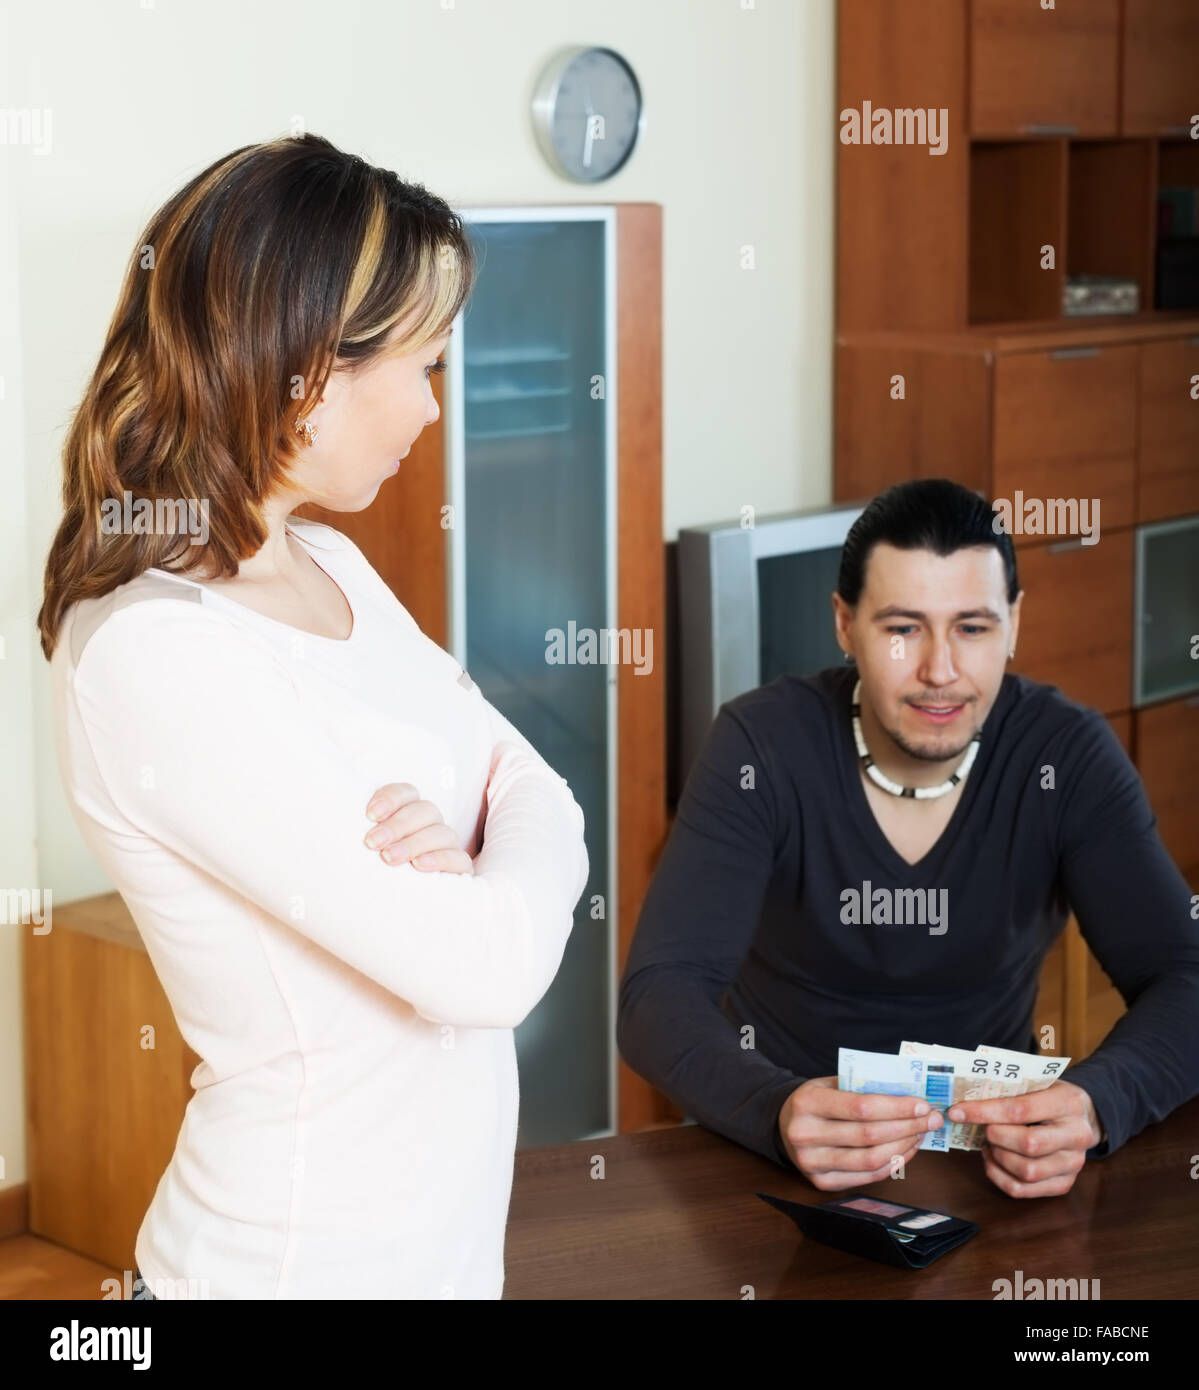 Financial problems in family. Man counting cash, woman watching him in home - Stock Image